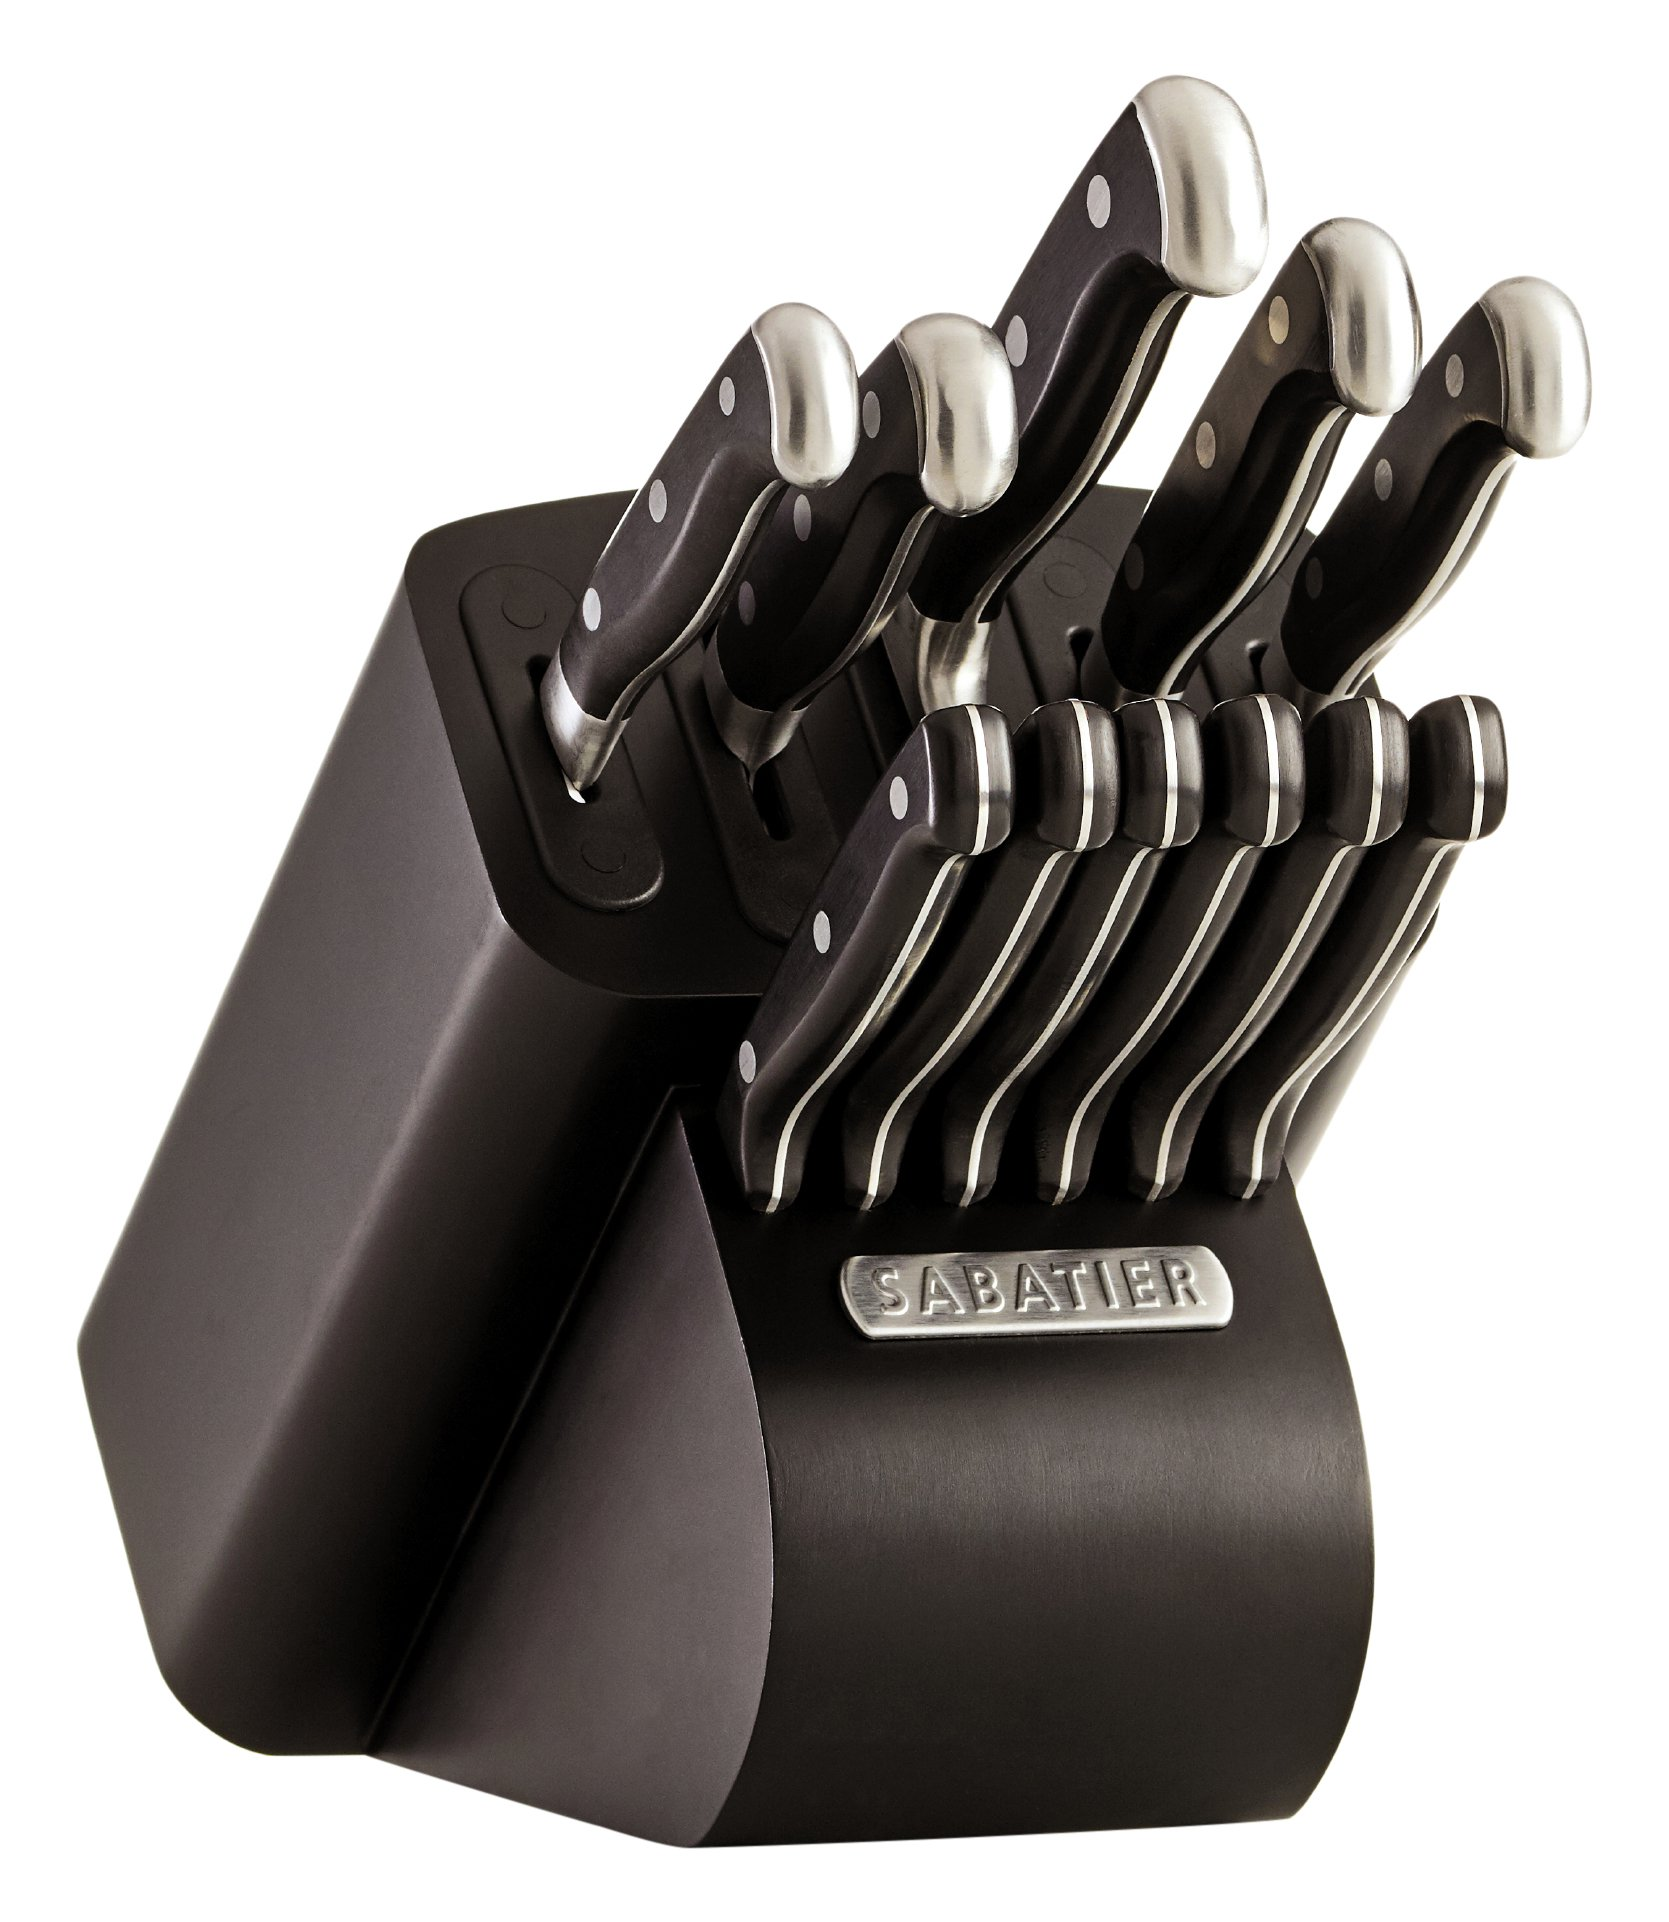 Sabatier Self-Sharpening Edgekeeper Pro 12-Piece Forged Triple Rivet Knife Block Set